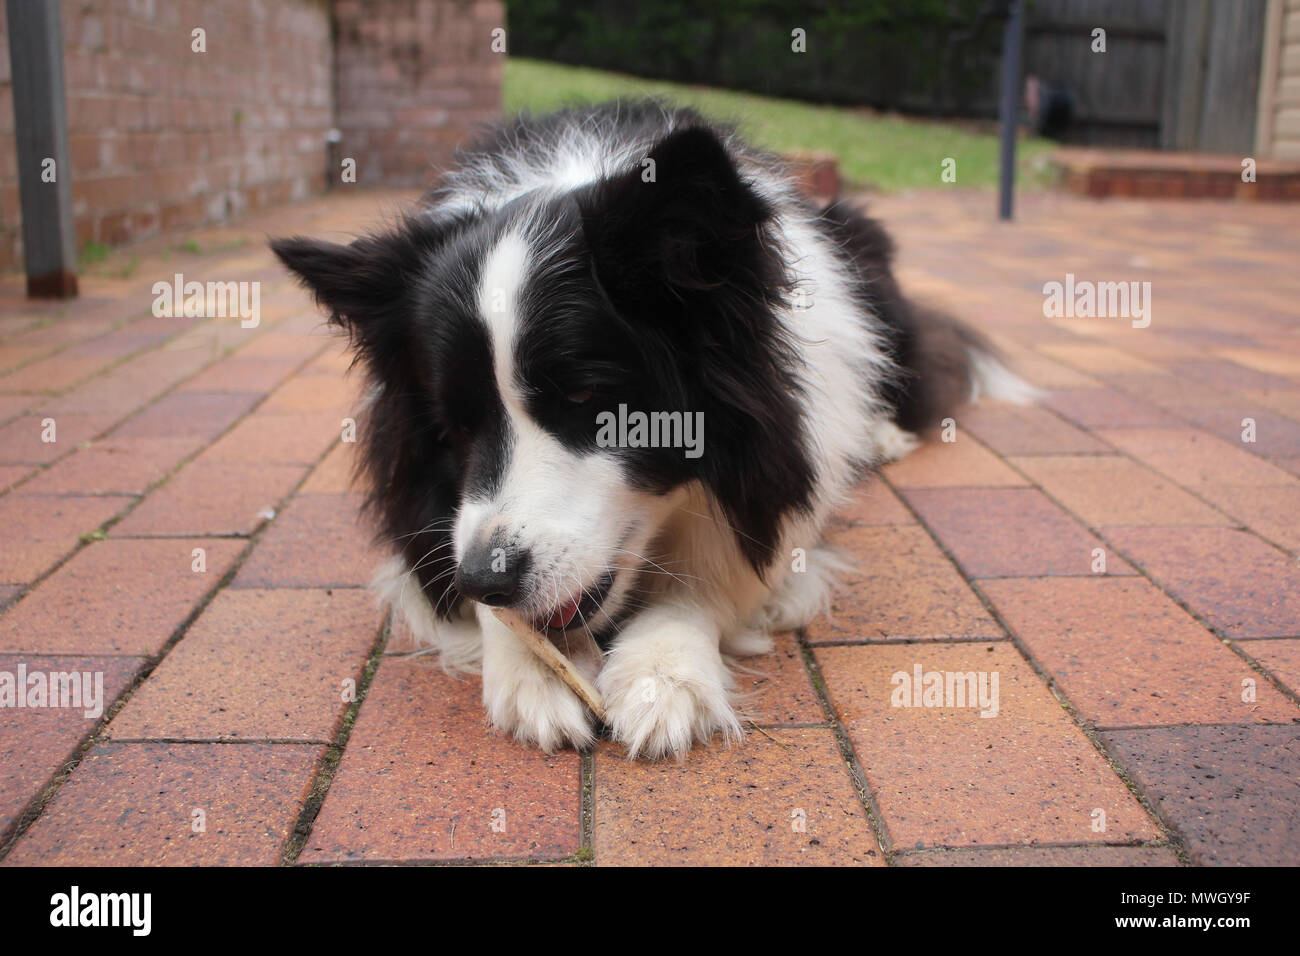 A purebred black and white Border Collie eating a bone Stock Photo